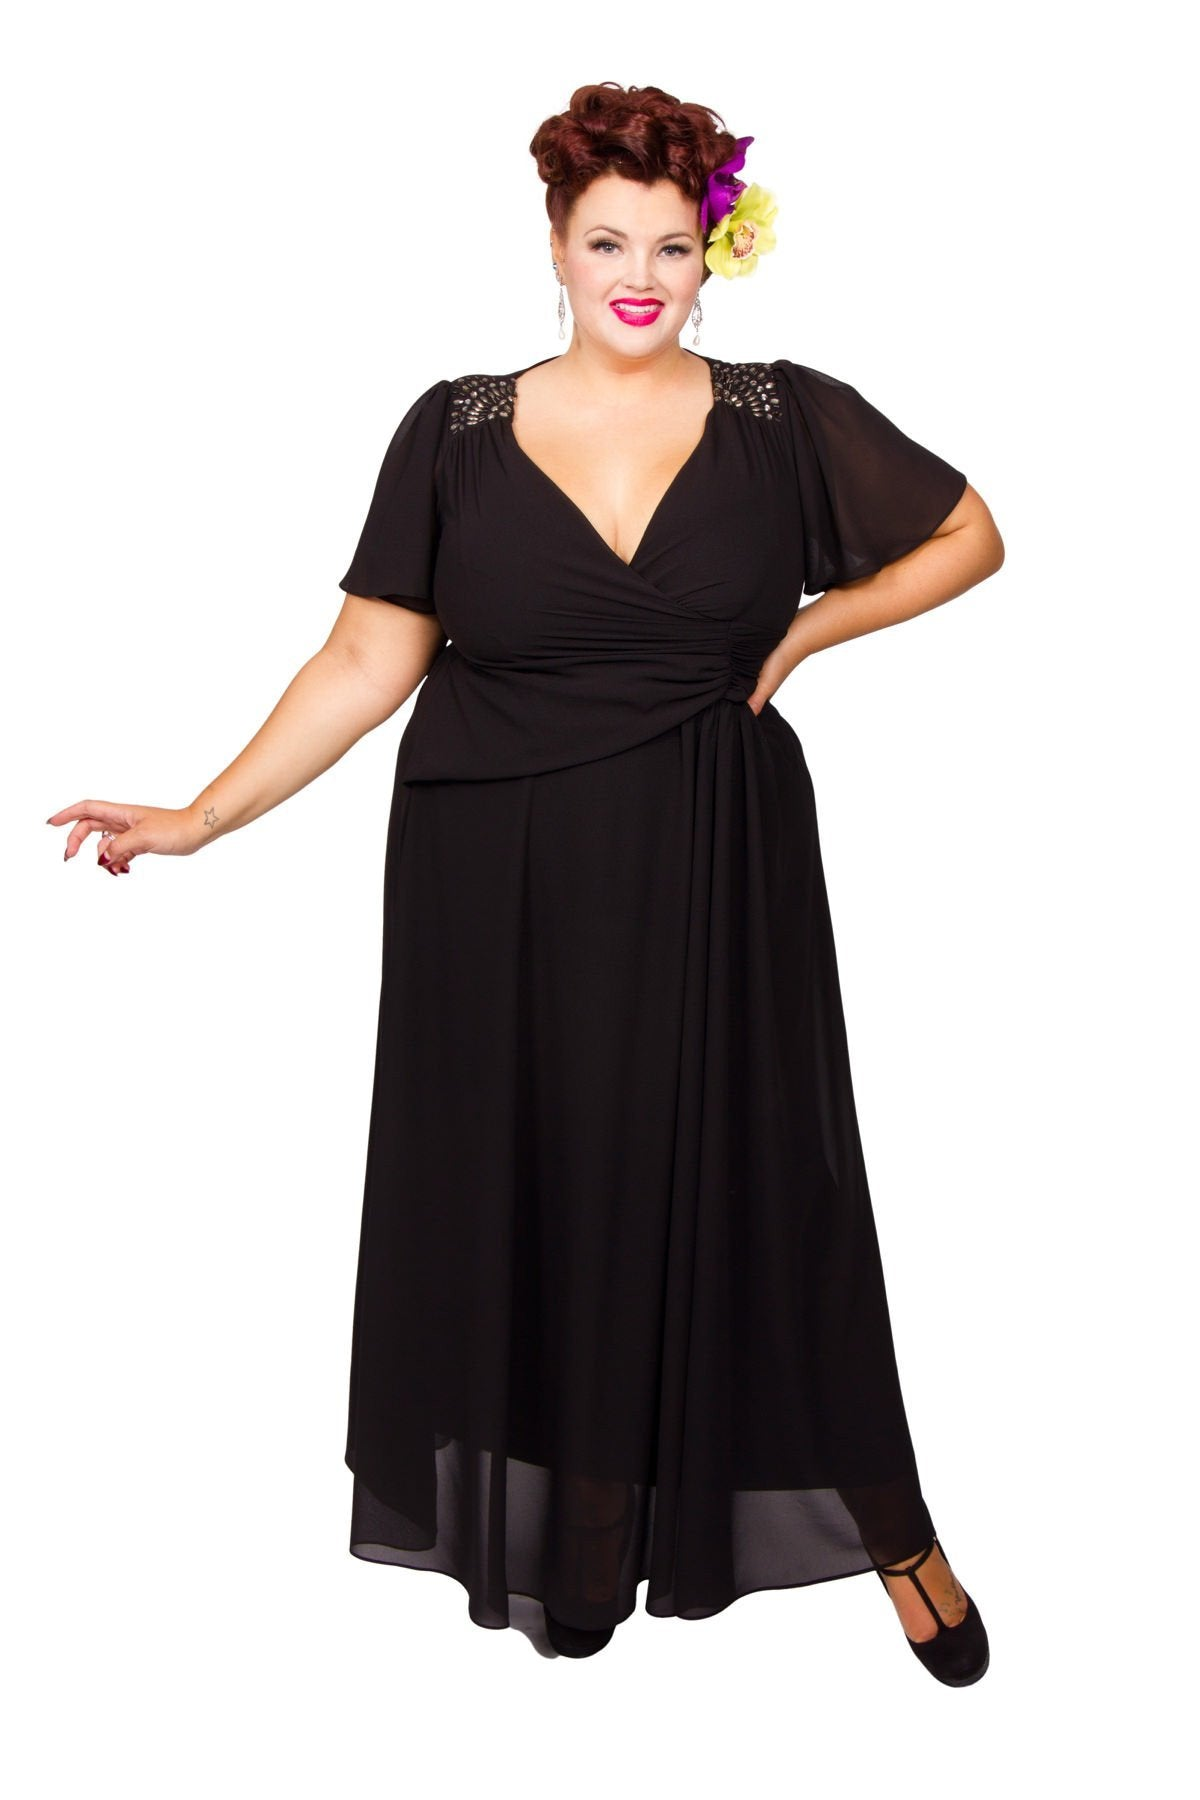 1940s Dresses and Clothing UK | 40s Shoes UK Embellished Shoulder Wrap Gown - Black  26 £80.00 AT vintagedancer.com